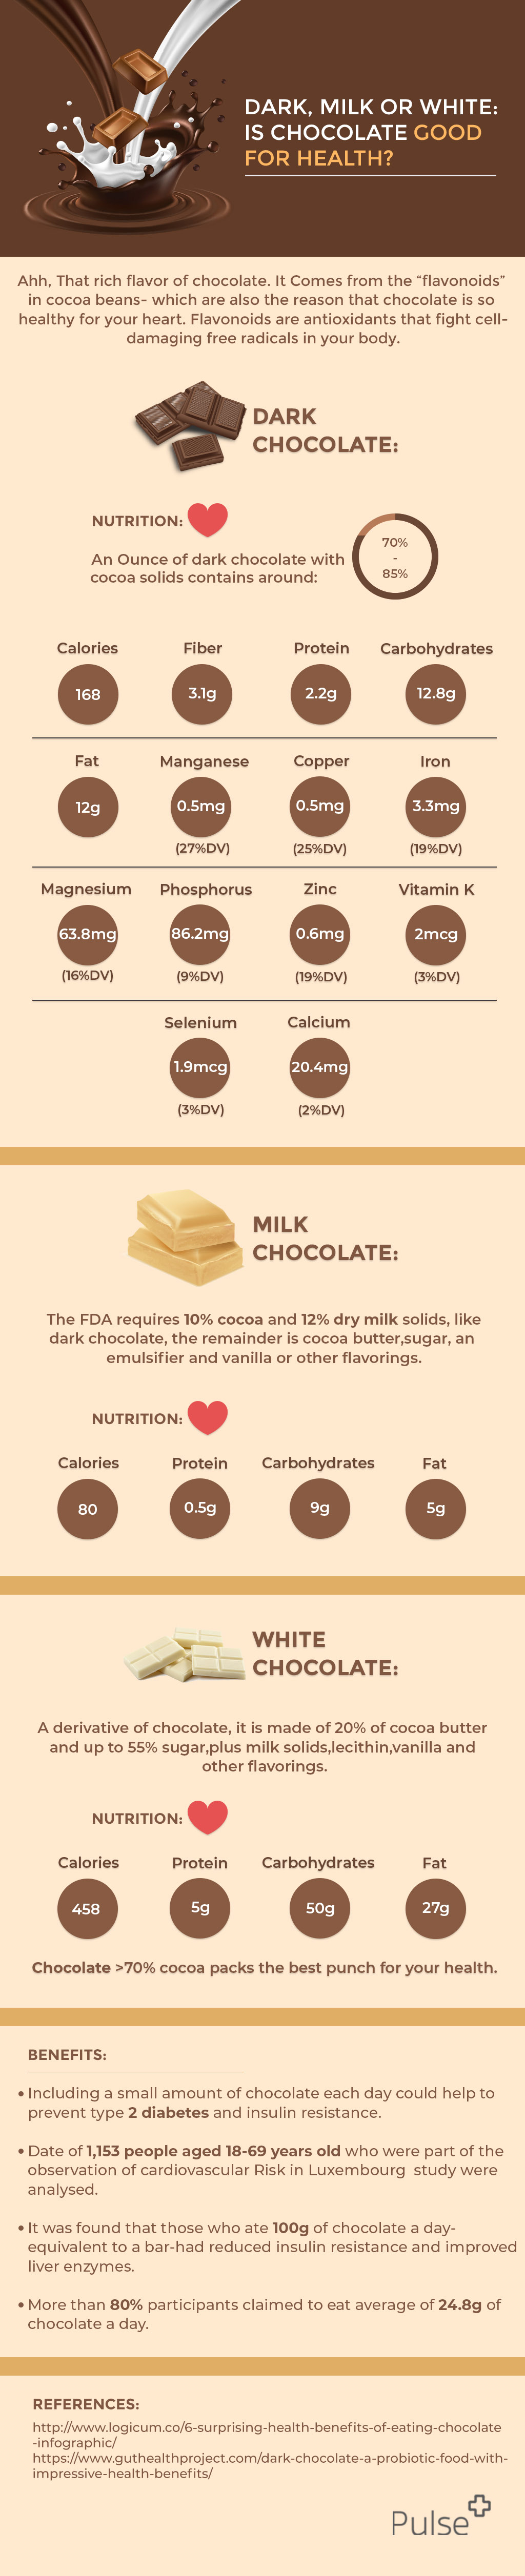 Dark, Milk or White: Is Chocolate Good for Health?